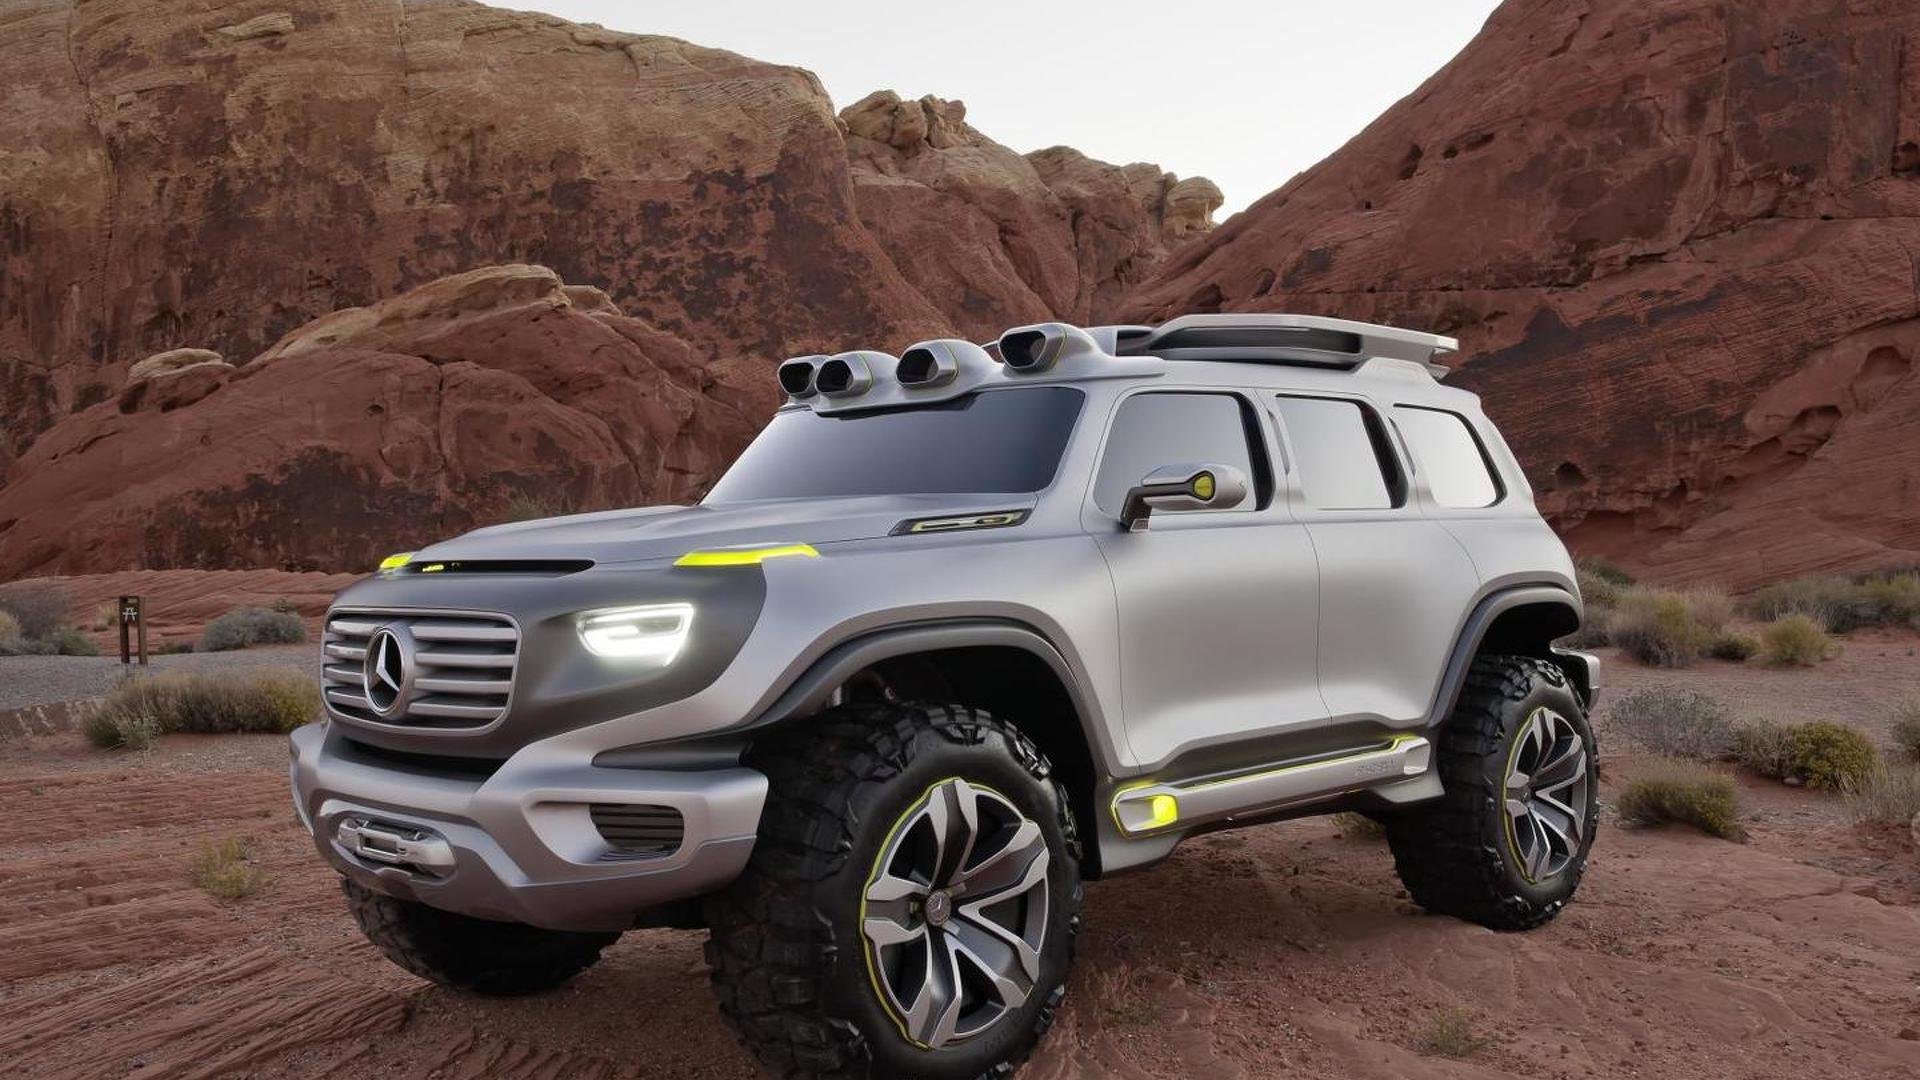 Mercedes Glb Reportedly Coming In 2019 With Renault Sourced 3 Cylinder Engines